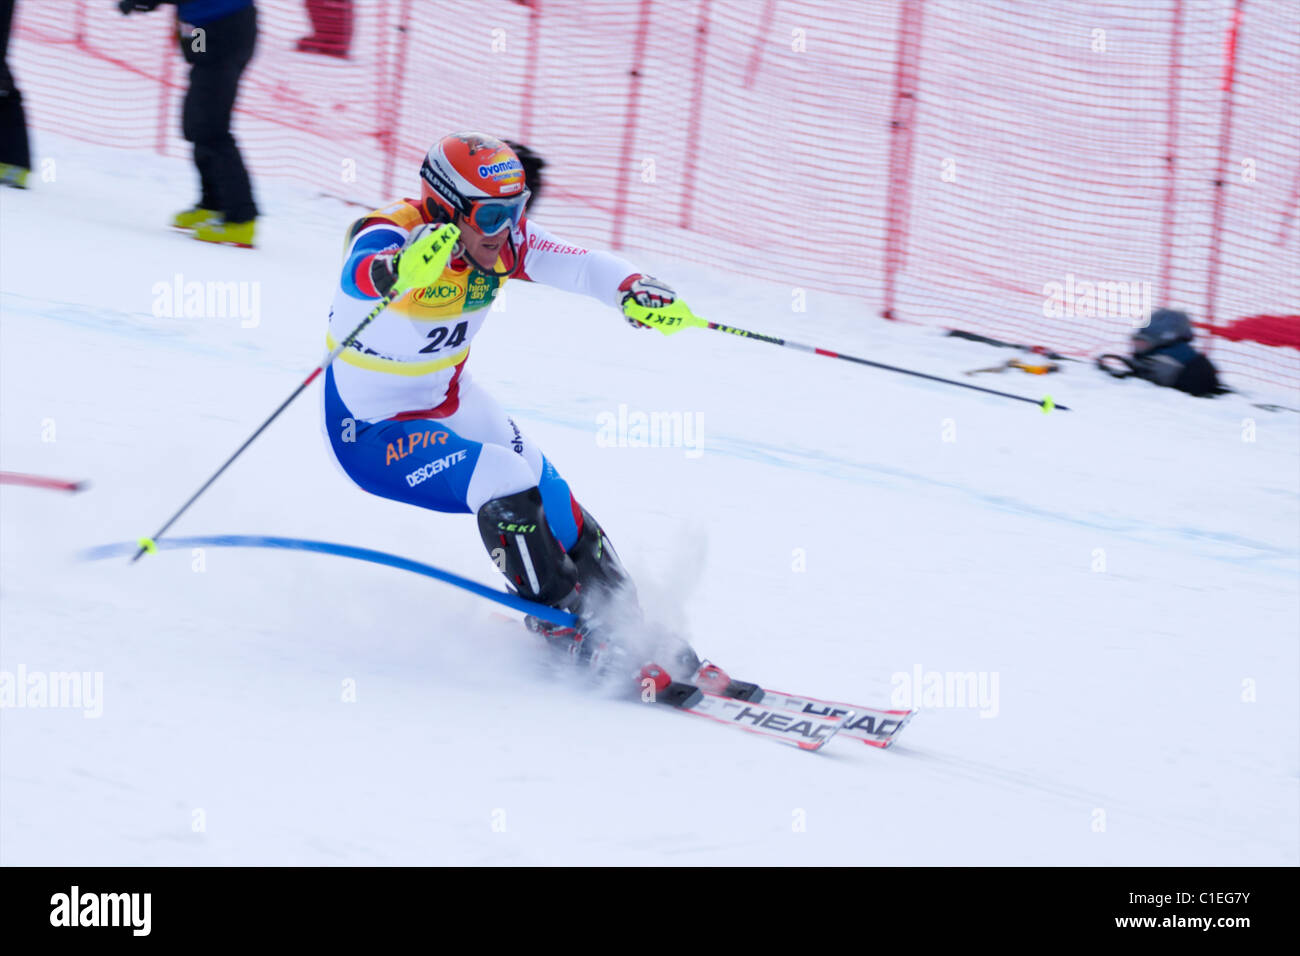 Didier Cuche attacking the slalom course in Beaver Creek - Stock Image